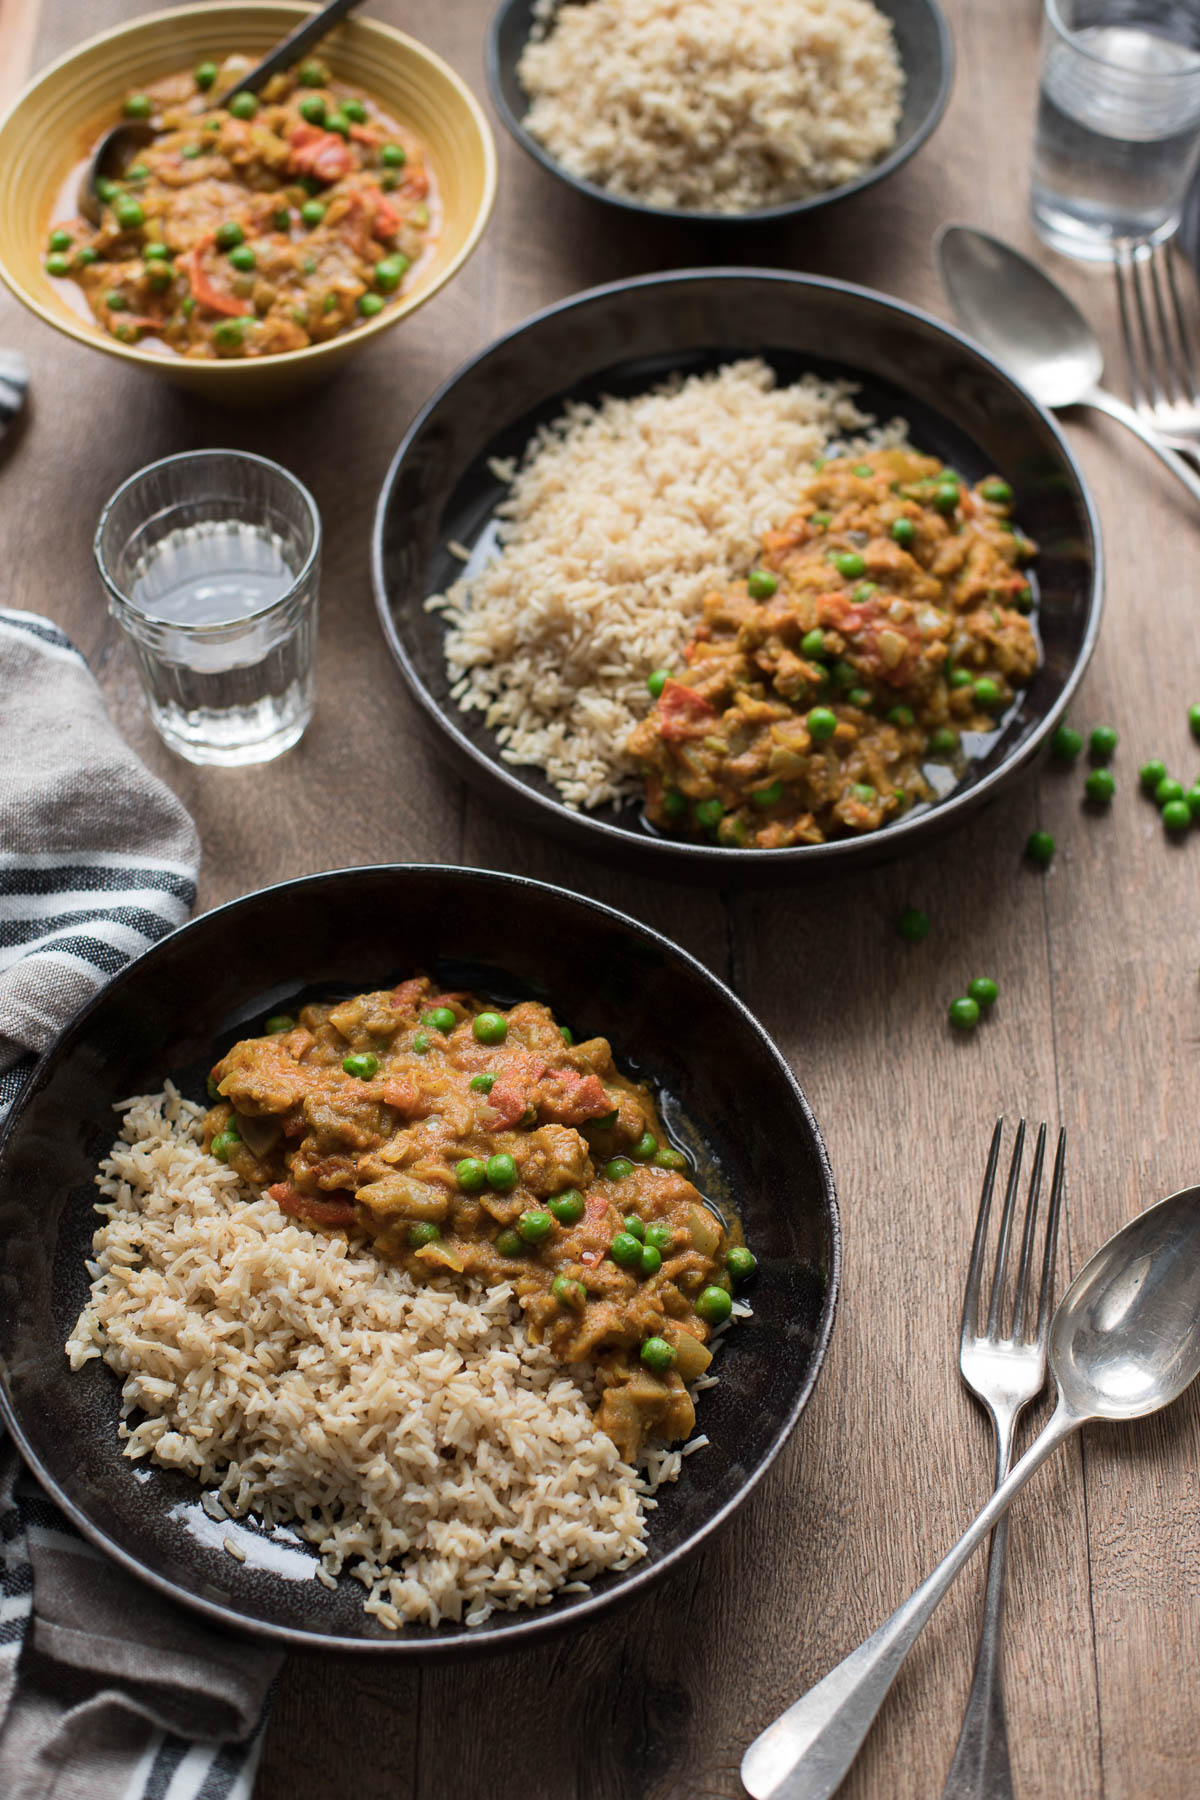 Spicy Indian Eggplant Curry, Vegan Aubergine Baingan Bharta with Basmati Rice